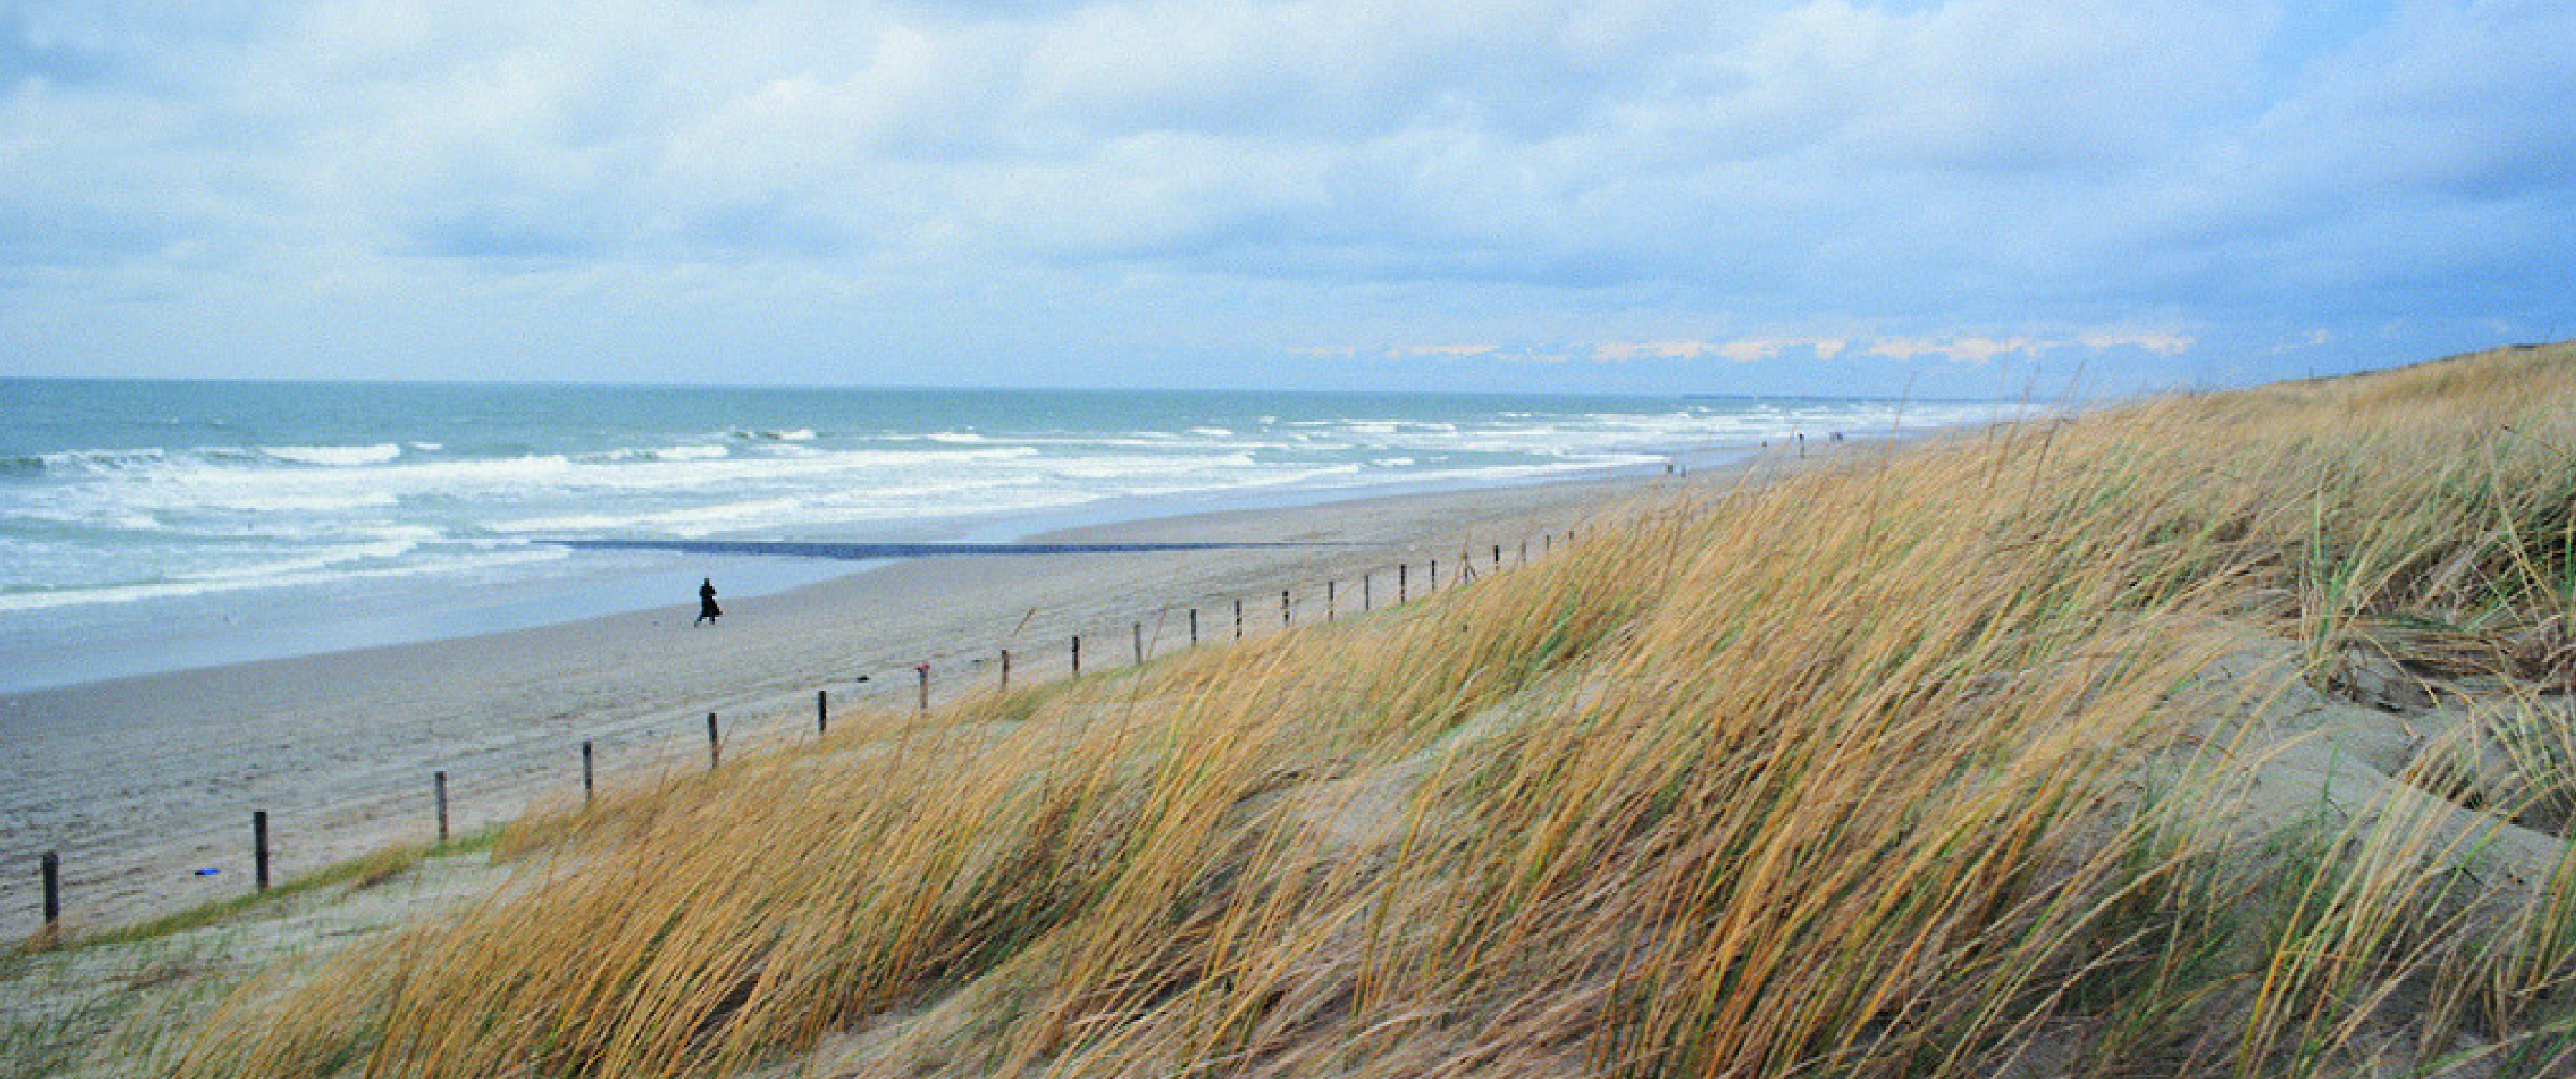 Beaches in the Netherlands